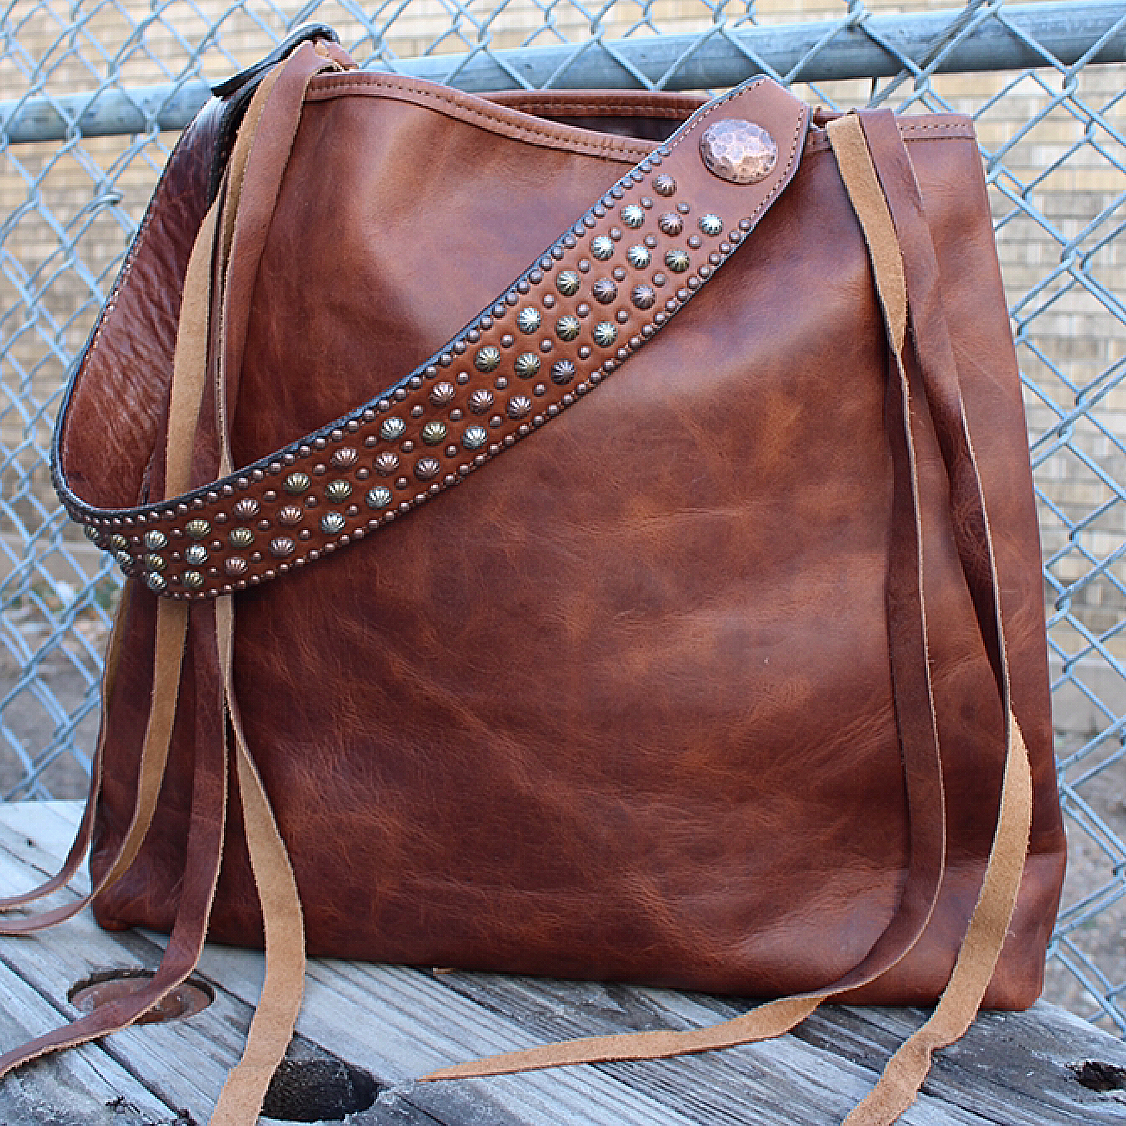 Medium Tote from Double J Saddlery